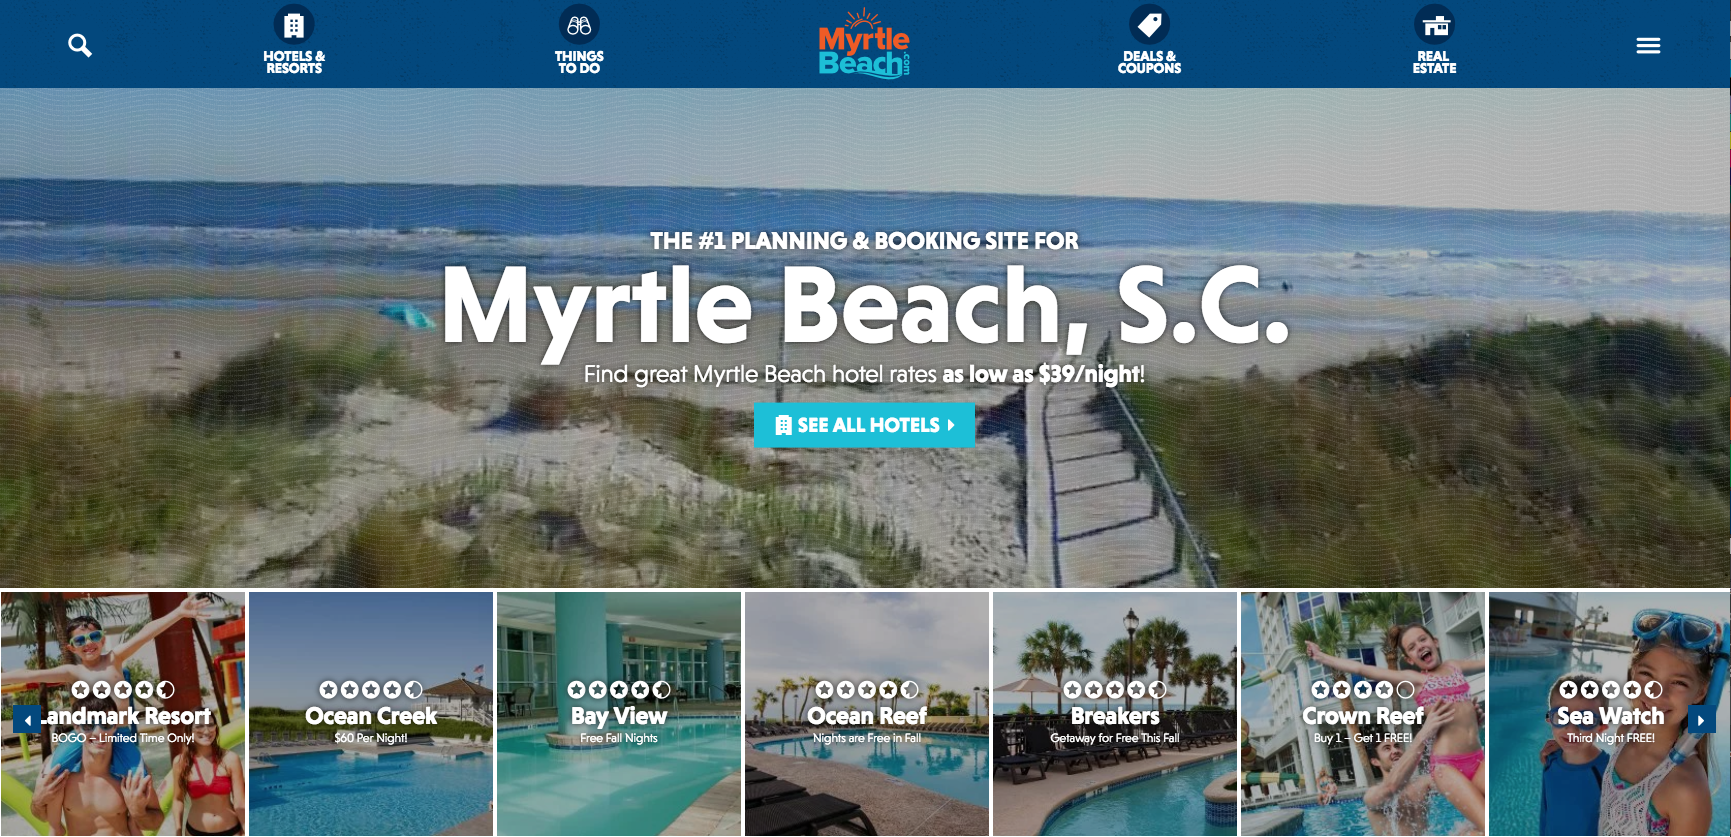 After nearly 10 years, the new design of MyrtleBeach.com was launched in spring 2017. Click to visit the site.